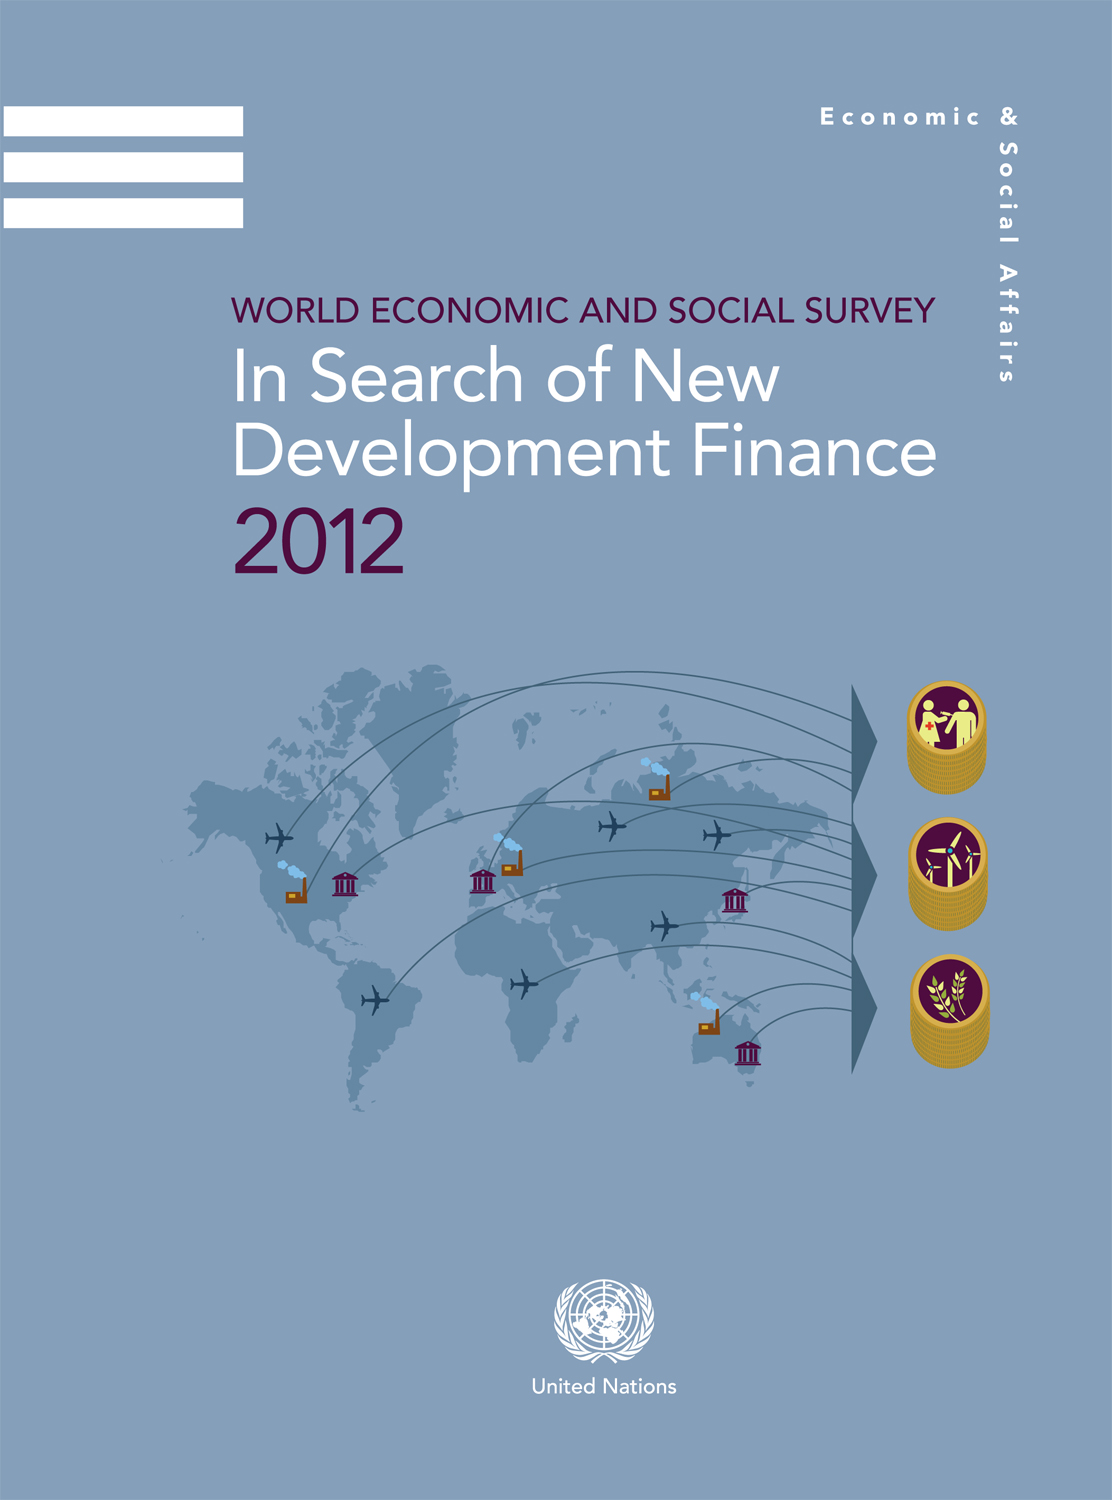 World Economic and Social Survey 2012